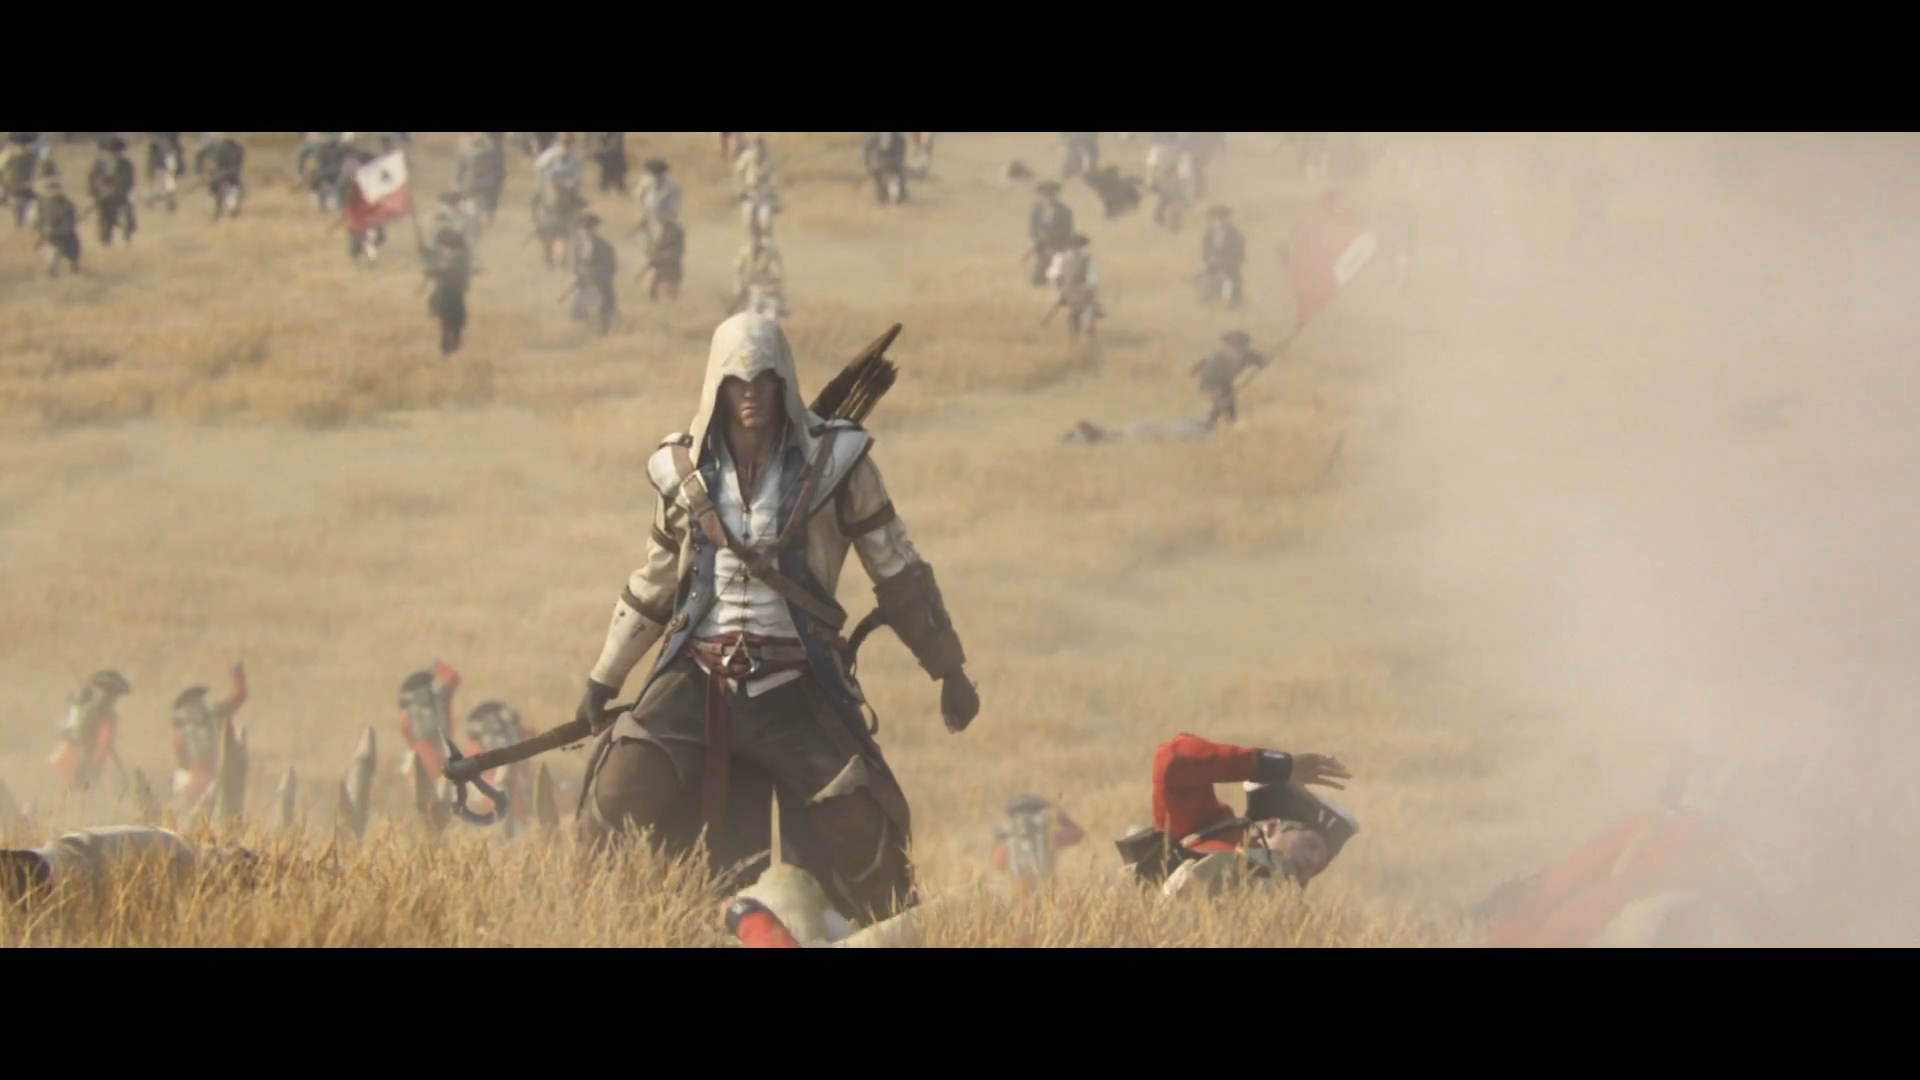 Assassins creed iii wallpapers pictures images assassins creed iii full hd wallpaper 1920x1080 voltagebd Choice Image